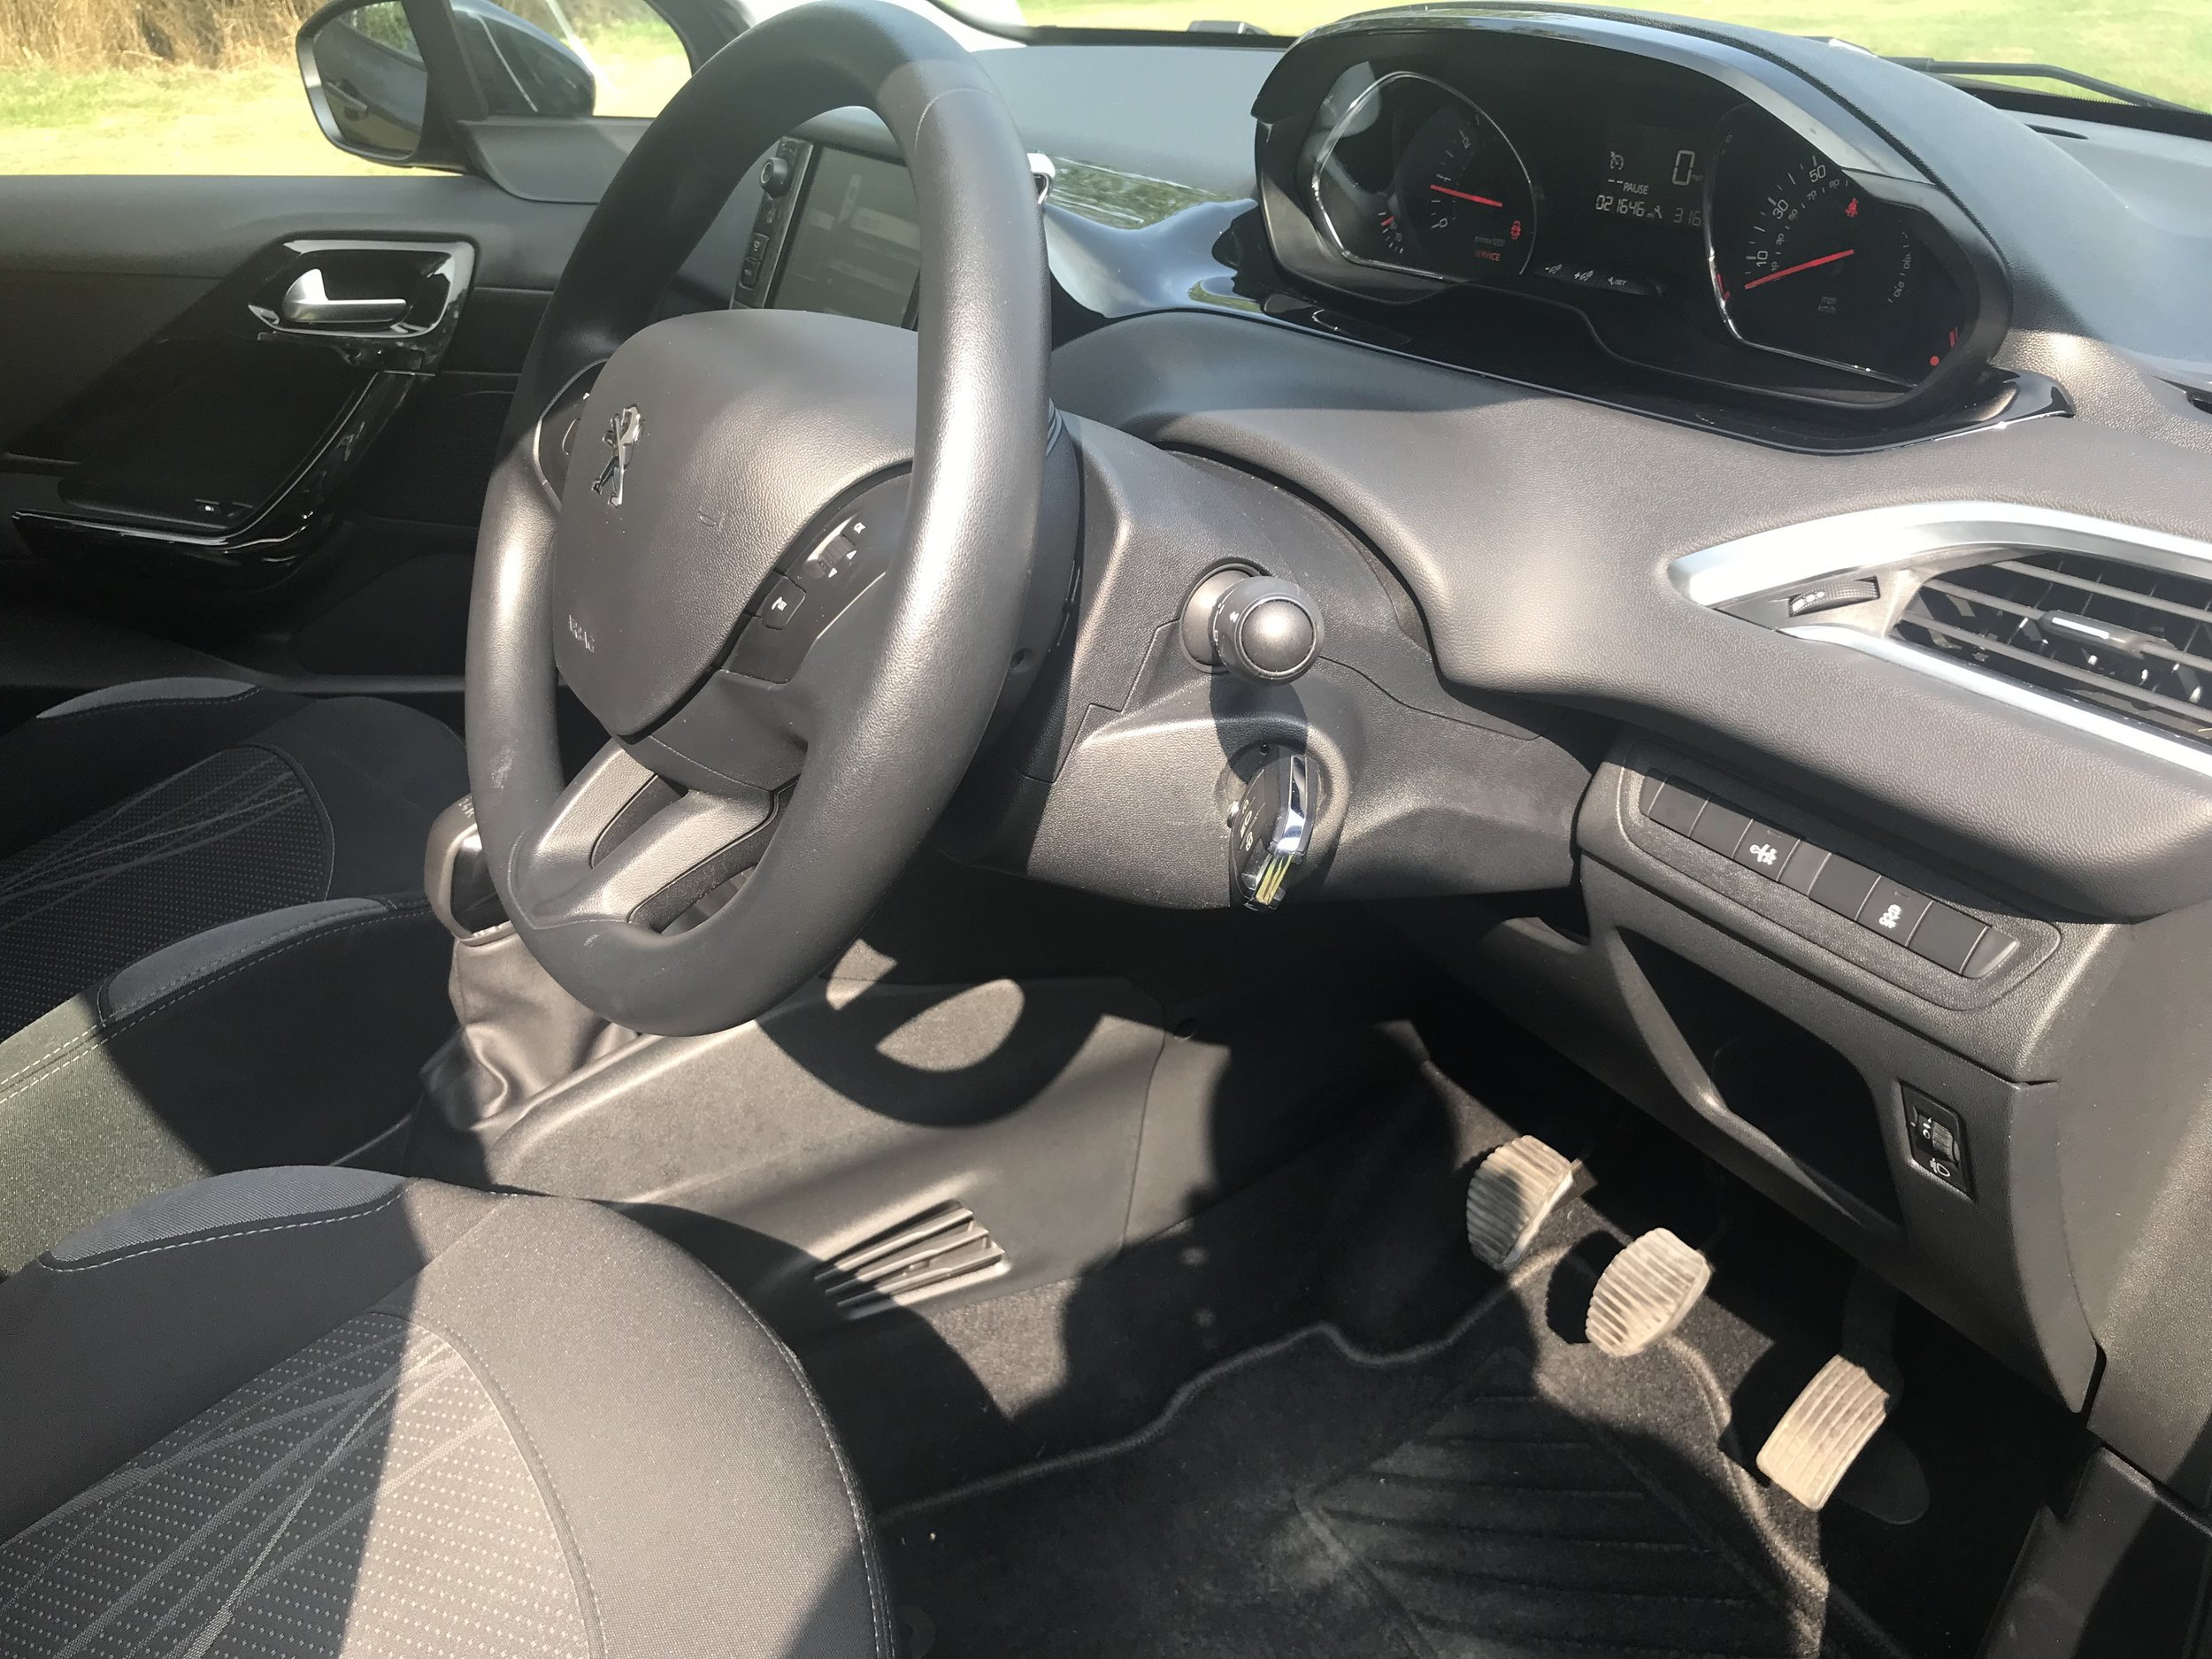 peugeot-208-vti-active-forsale-regalmotion-regalpreowned-usedcar-redditch-bromsgrove-worcestershire-6479-28.jpeg